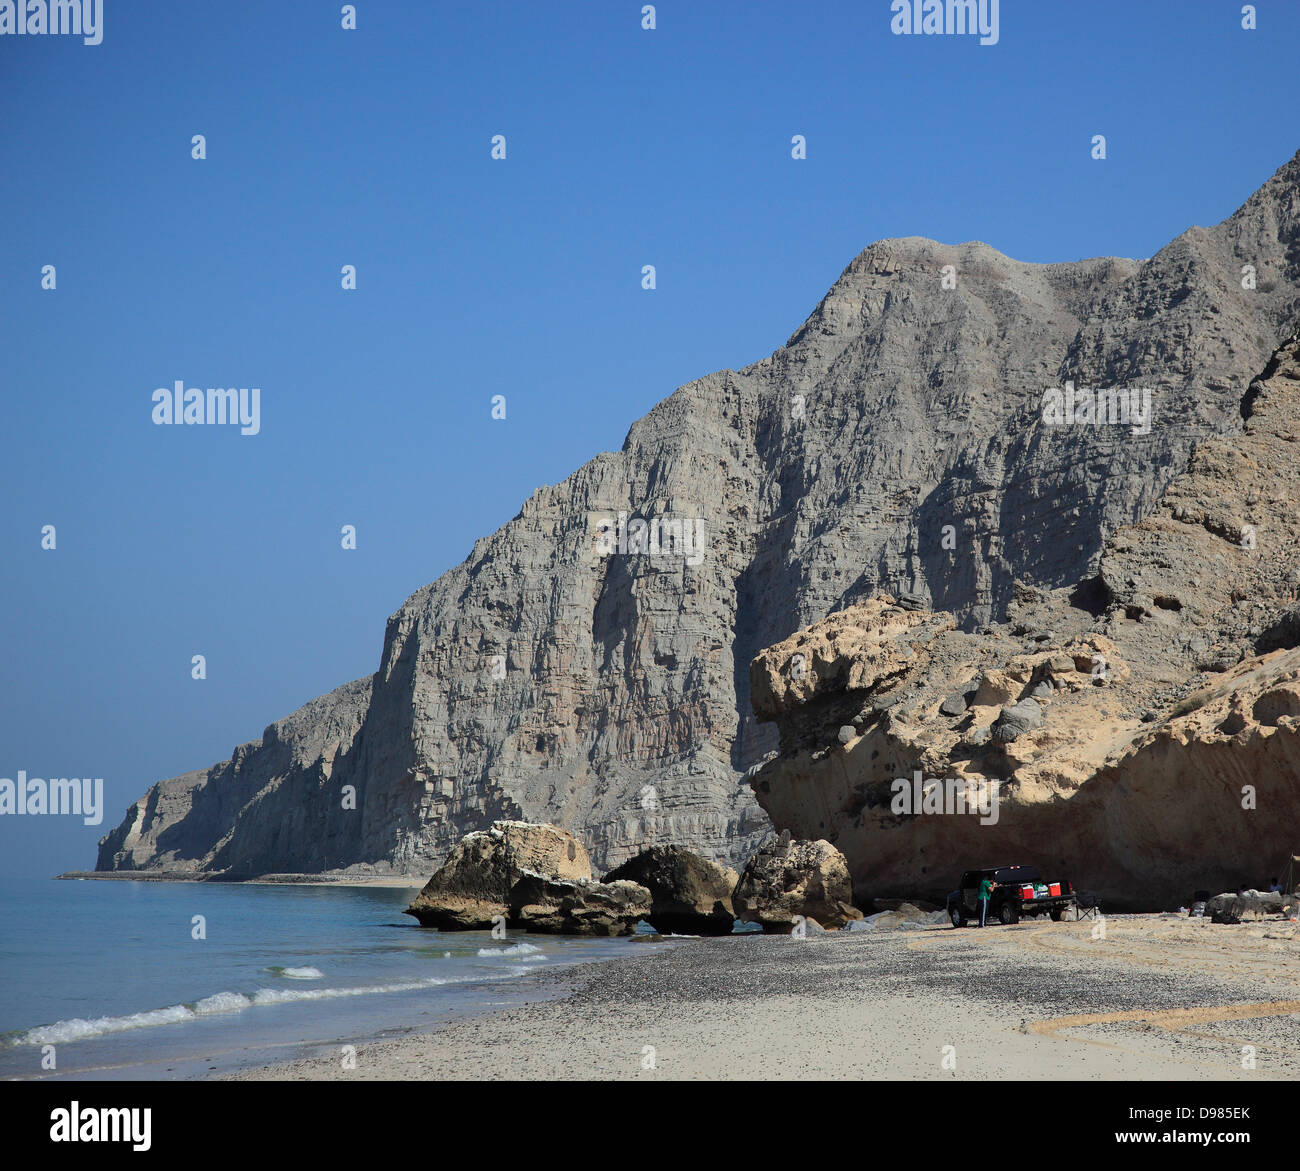 Coast in the Arabian gold, with Bukha, Bucha, in the granny's niches enclave of Musandam, Oman Stock Photo